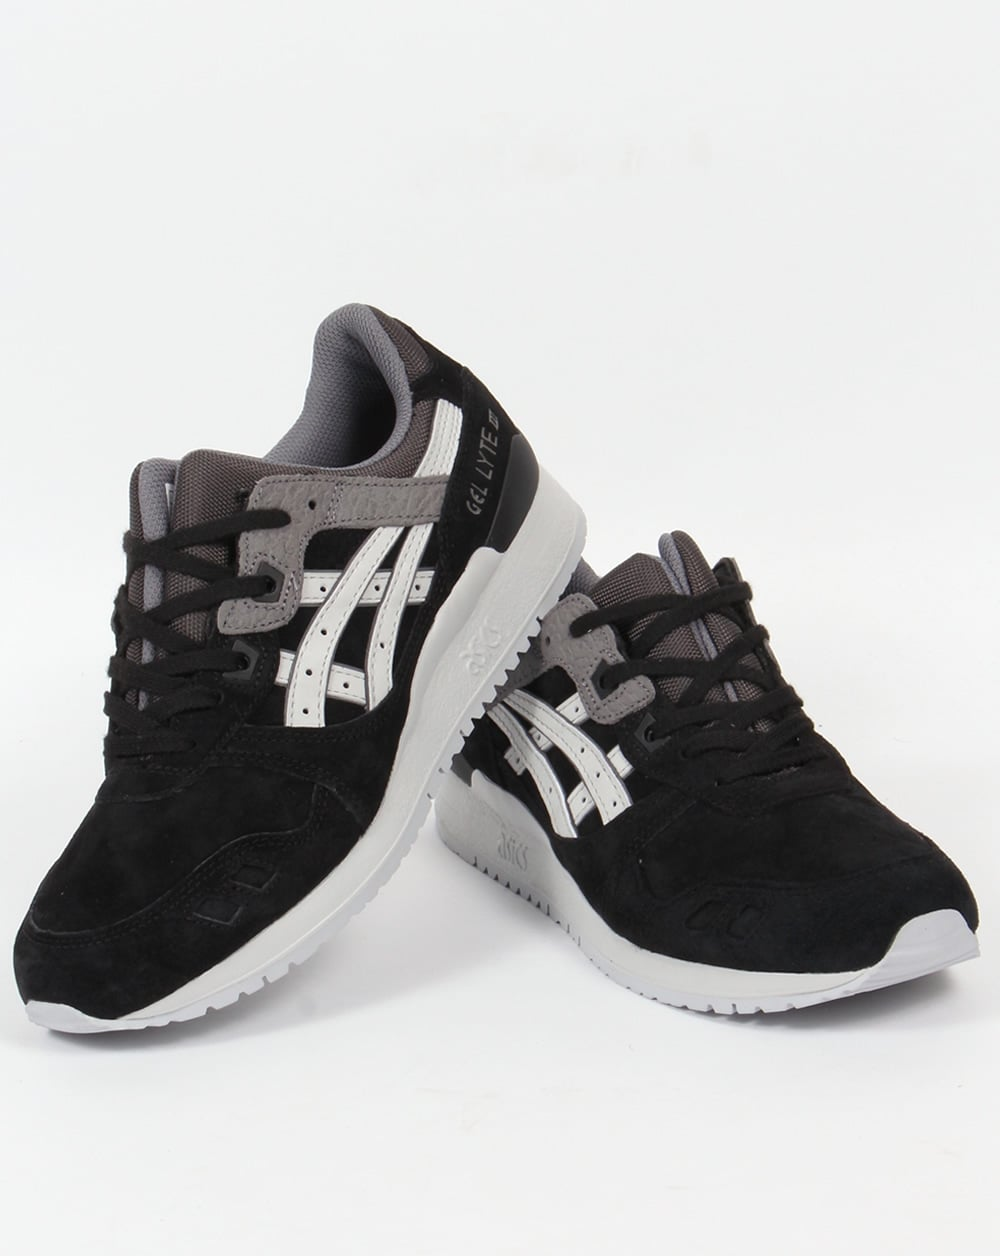 Black Gel Nails With One Silver Glitter Nail: Asics Gel Lyte III Trainers Black/Grey,3,shoes,runners